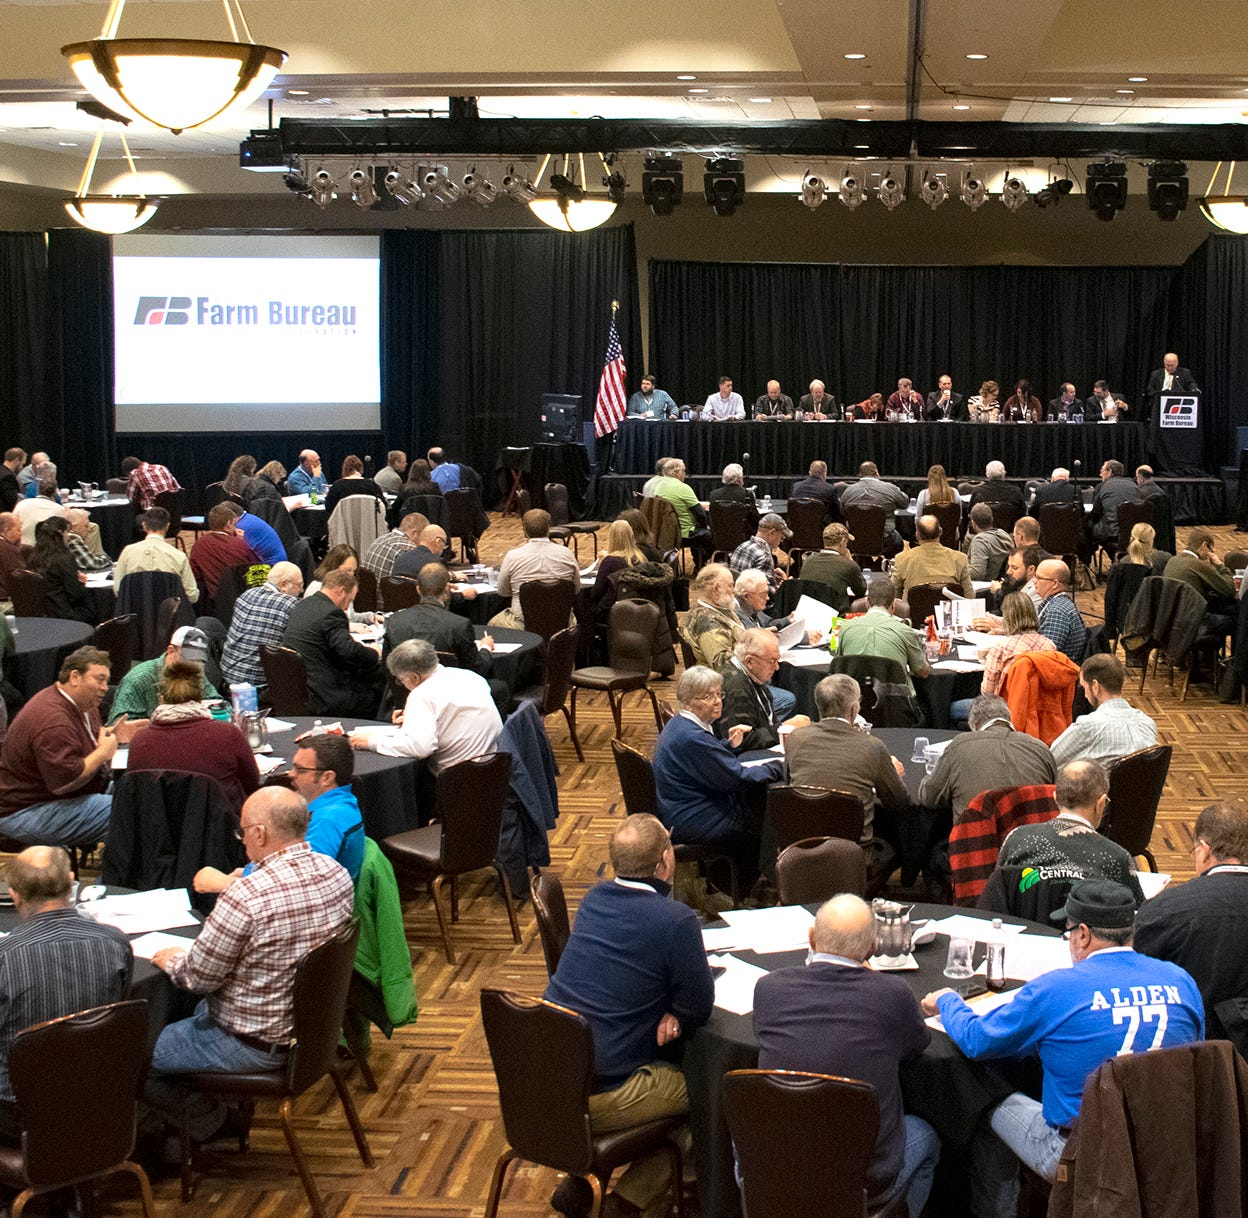 FB policy talk centers around dairy supply management system